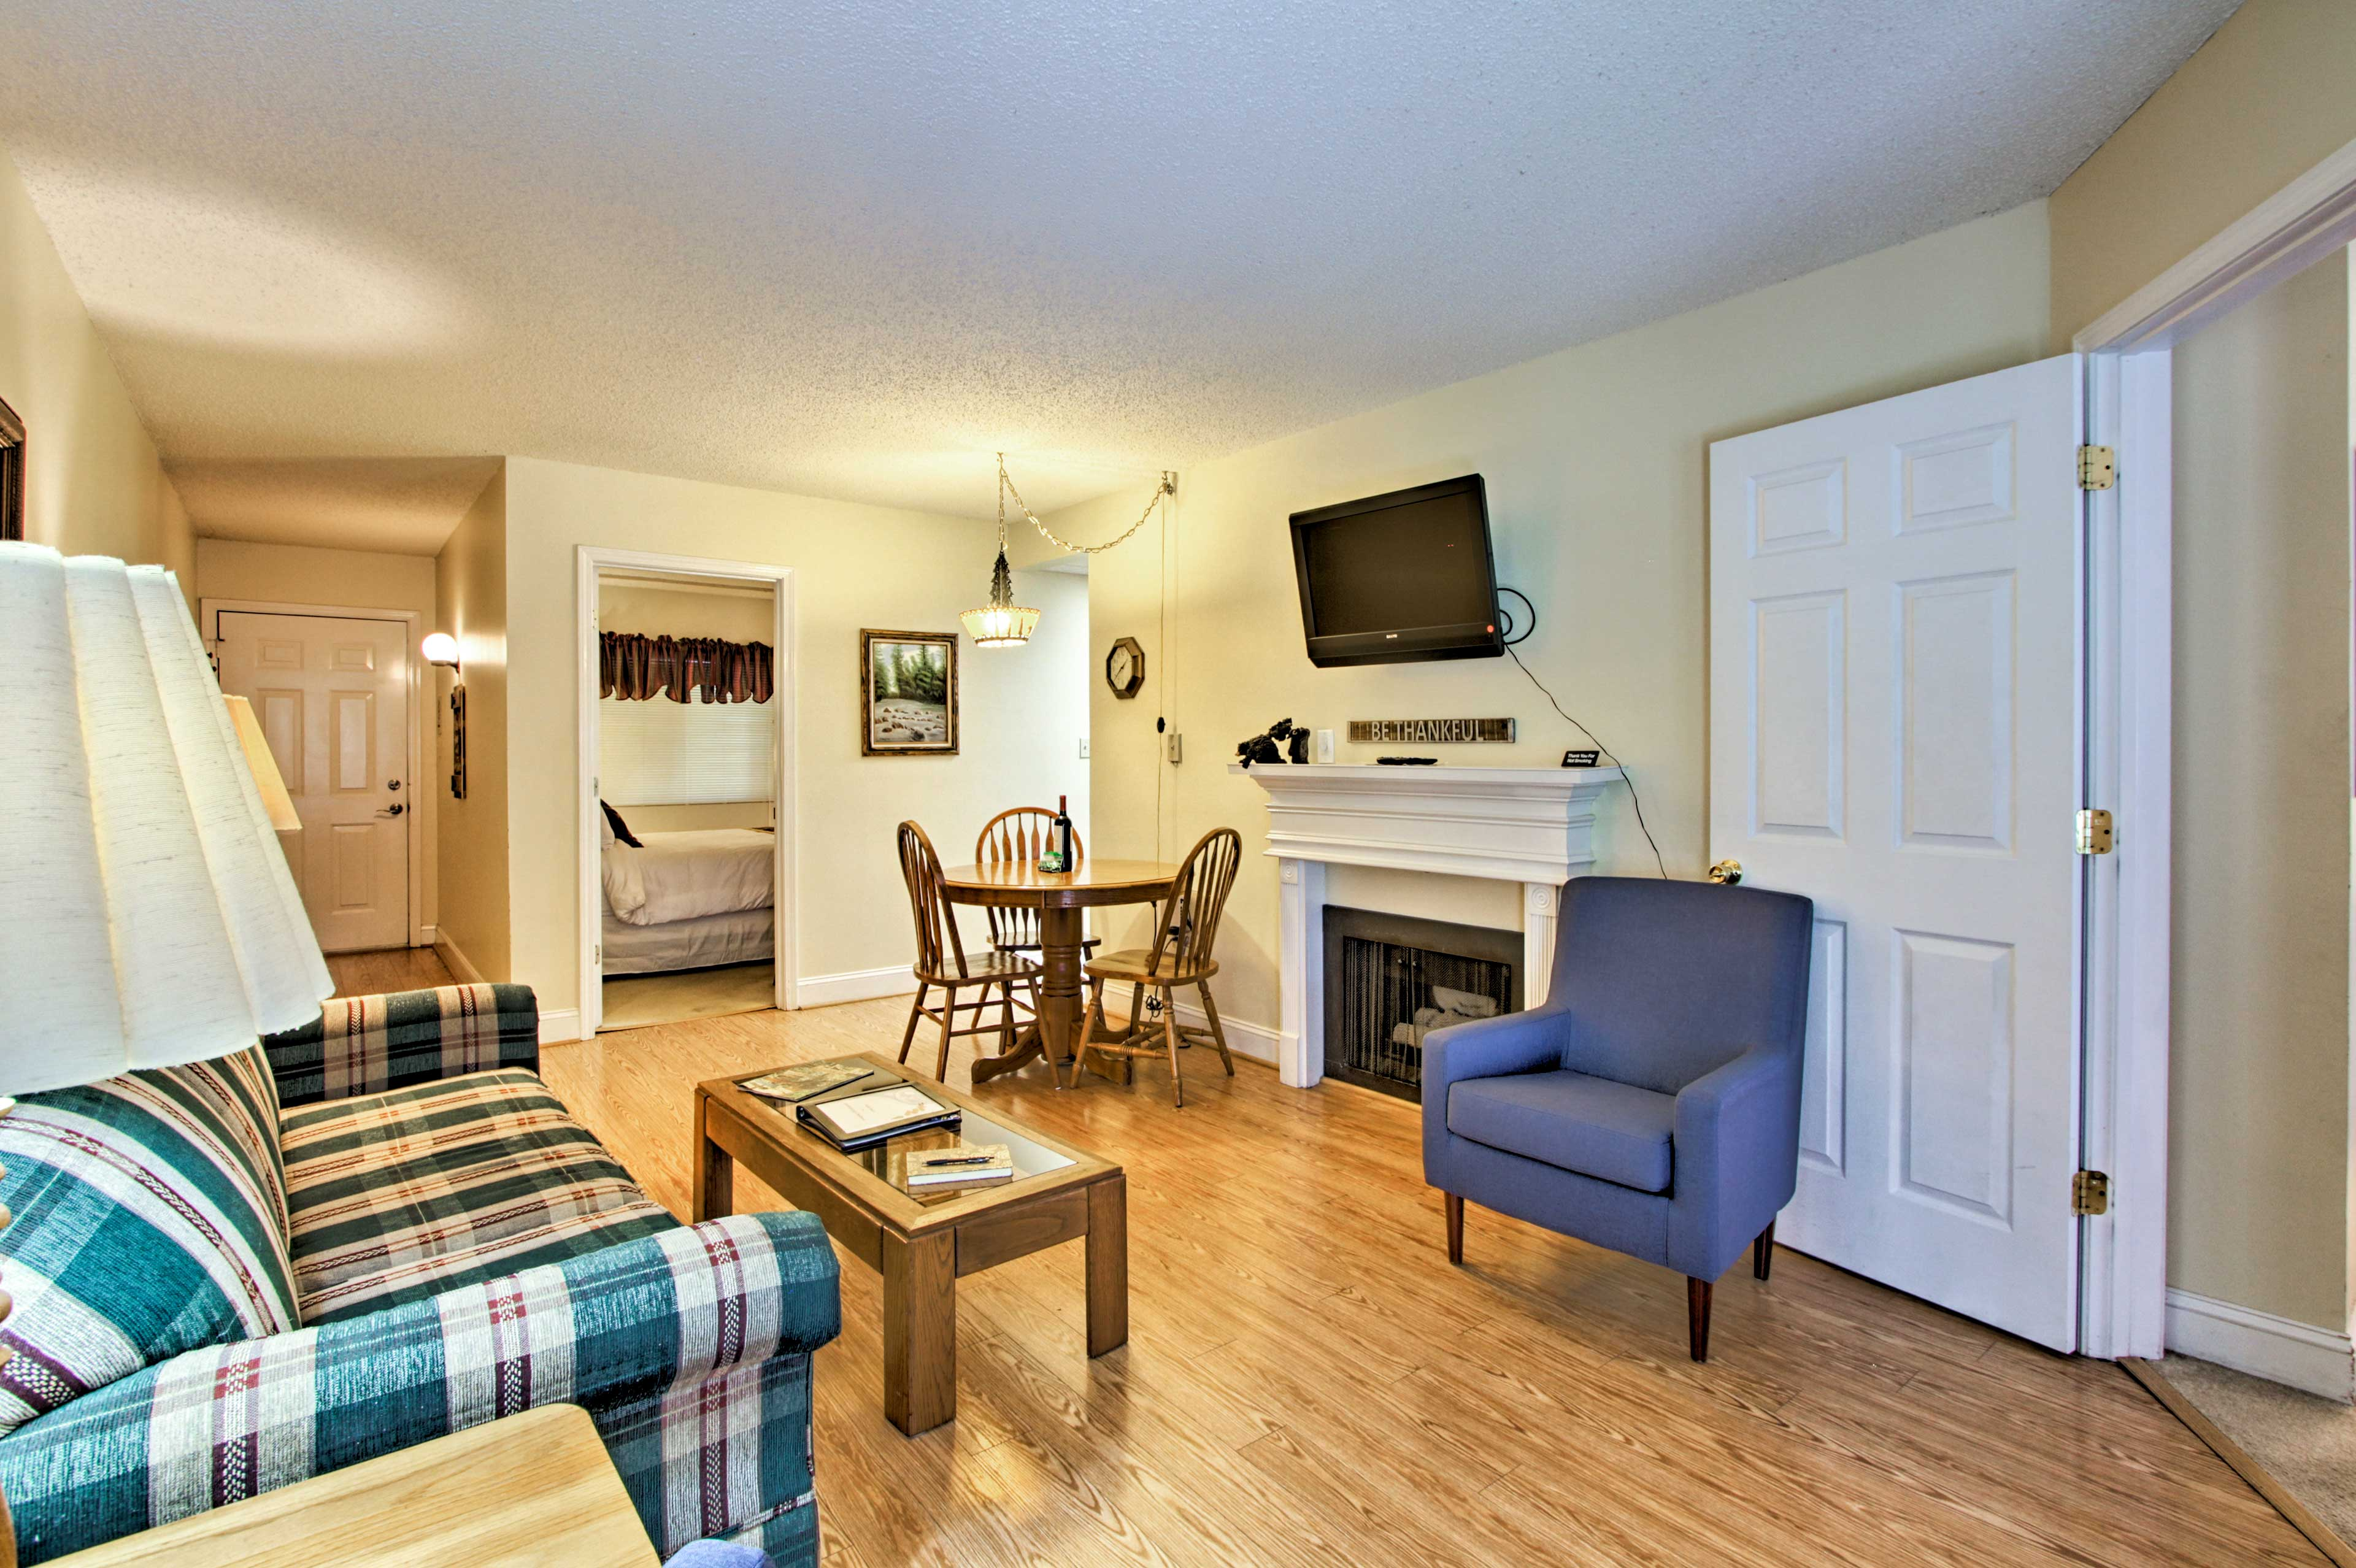 The living room features lovely hardwood floors.